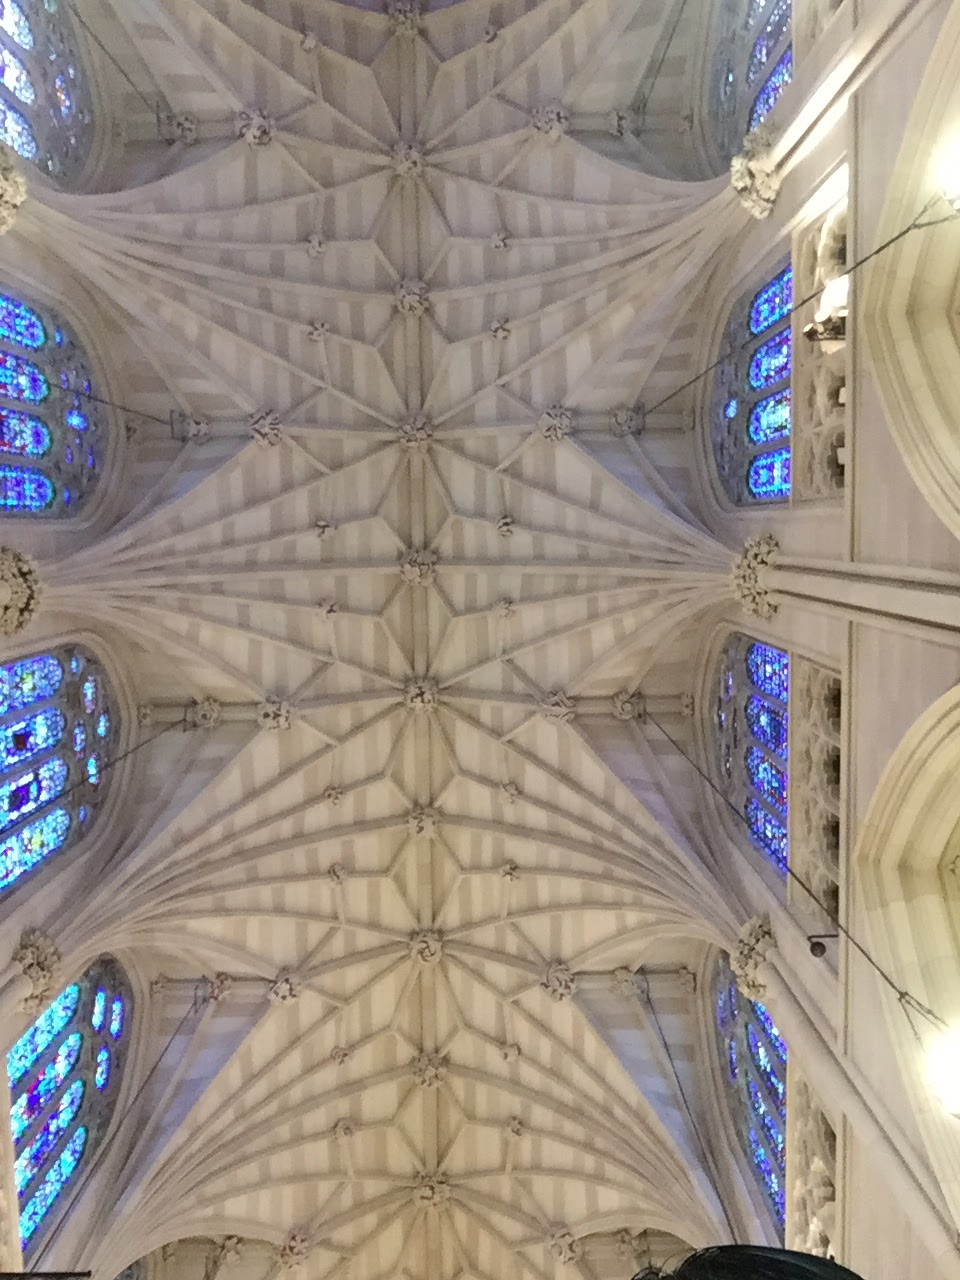 2017-07-02 NYC St Patrick Cathedral 04